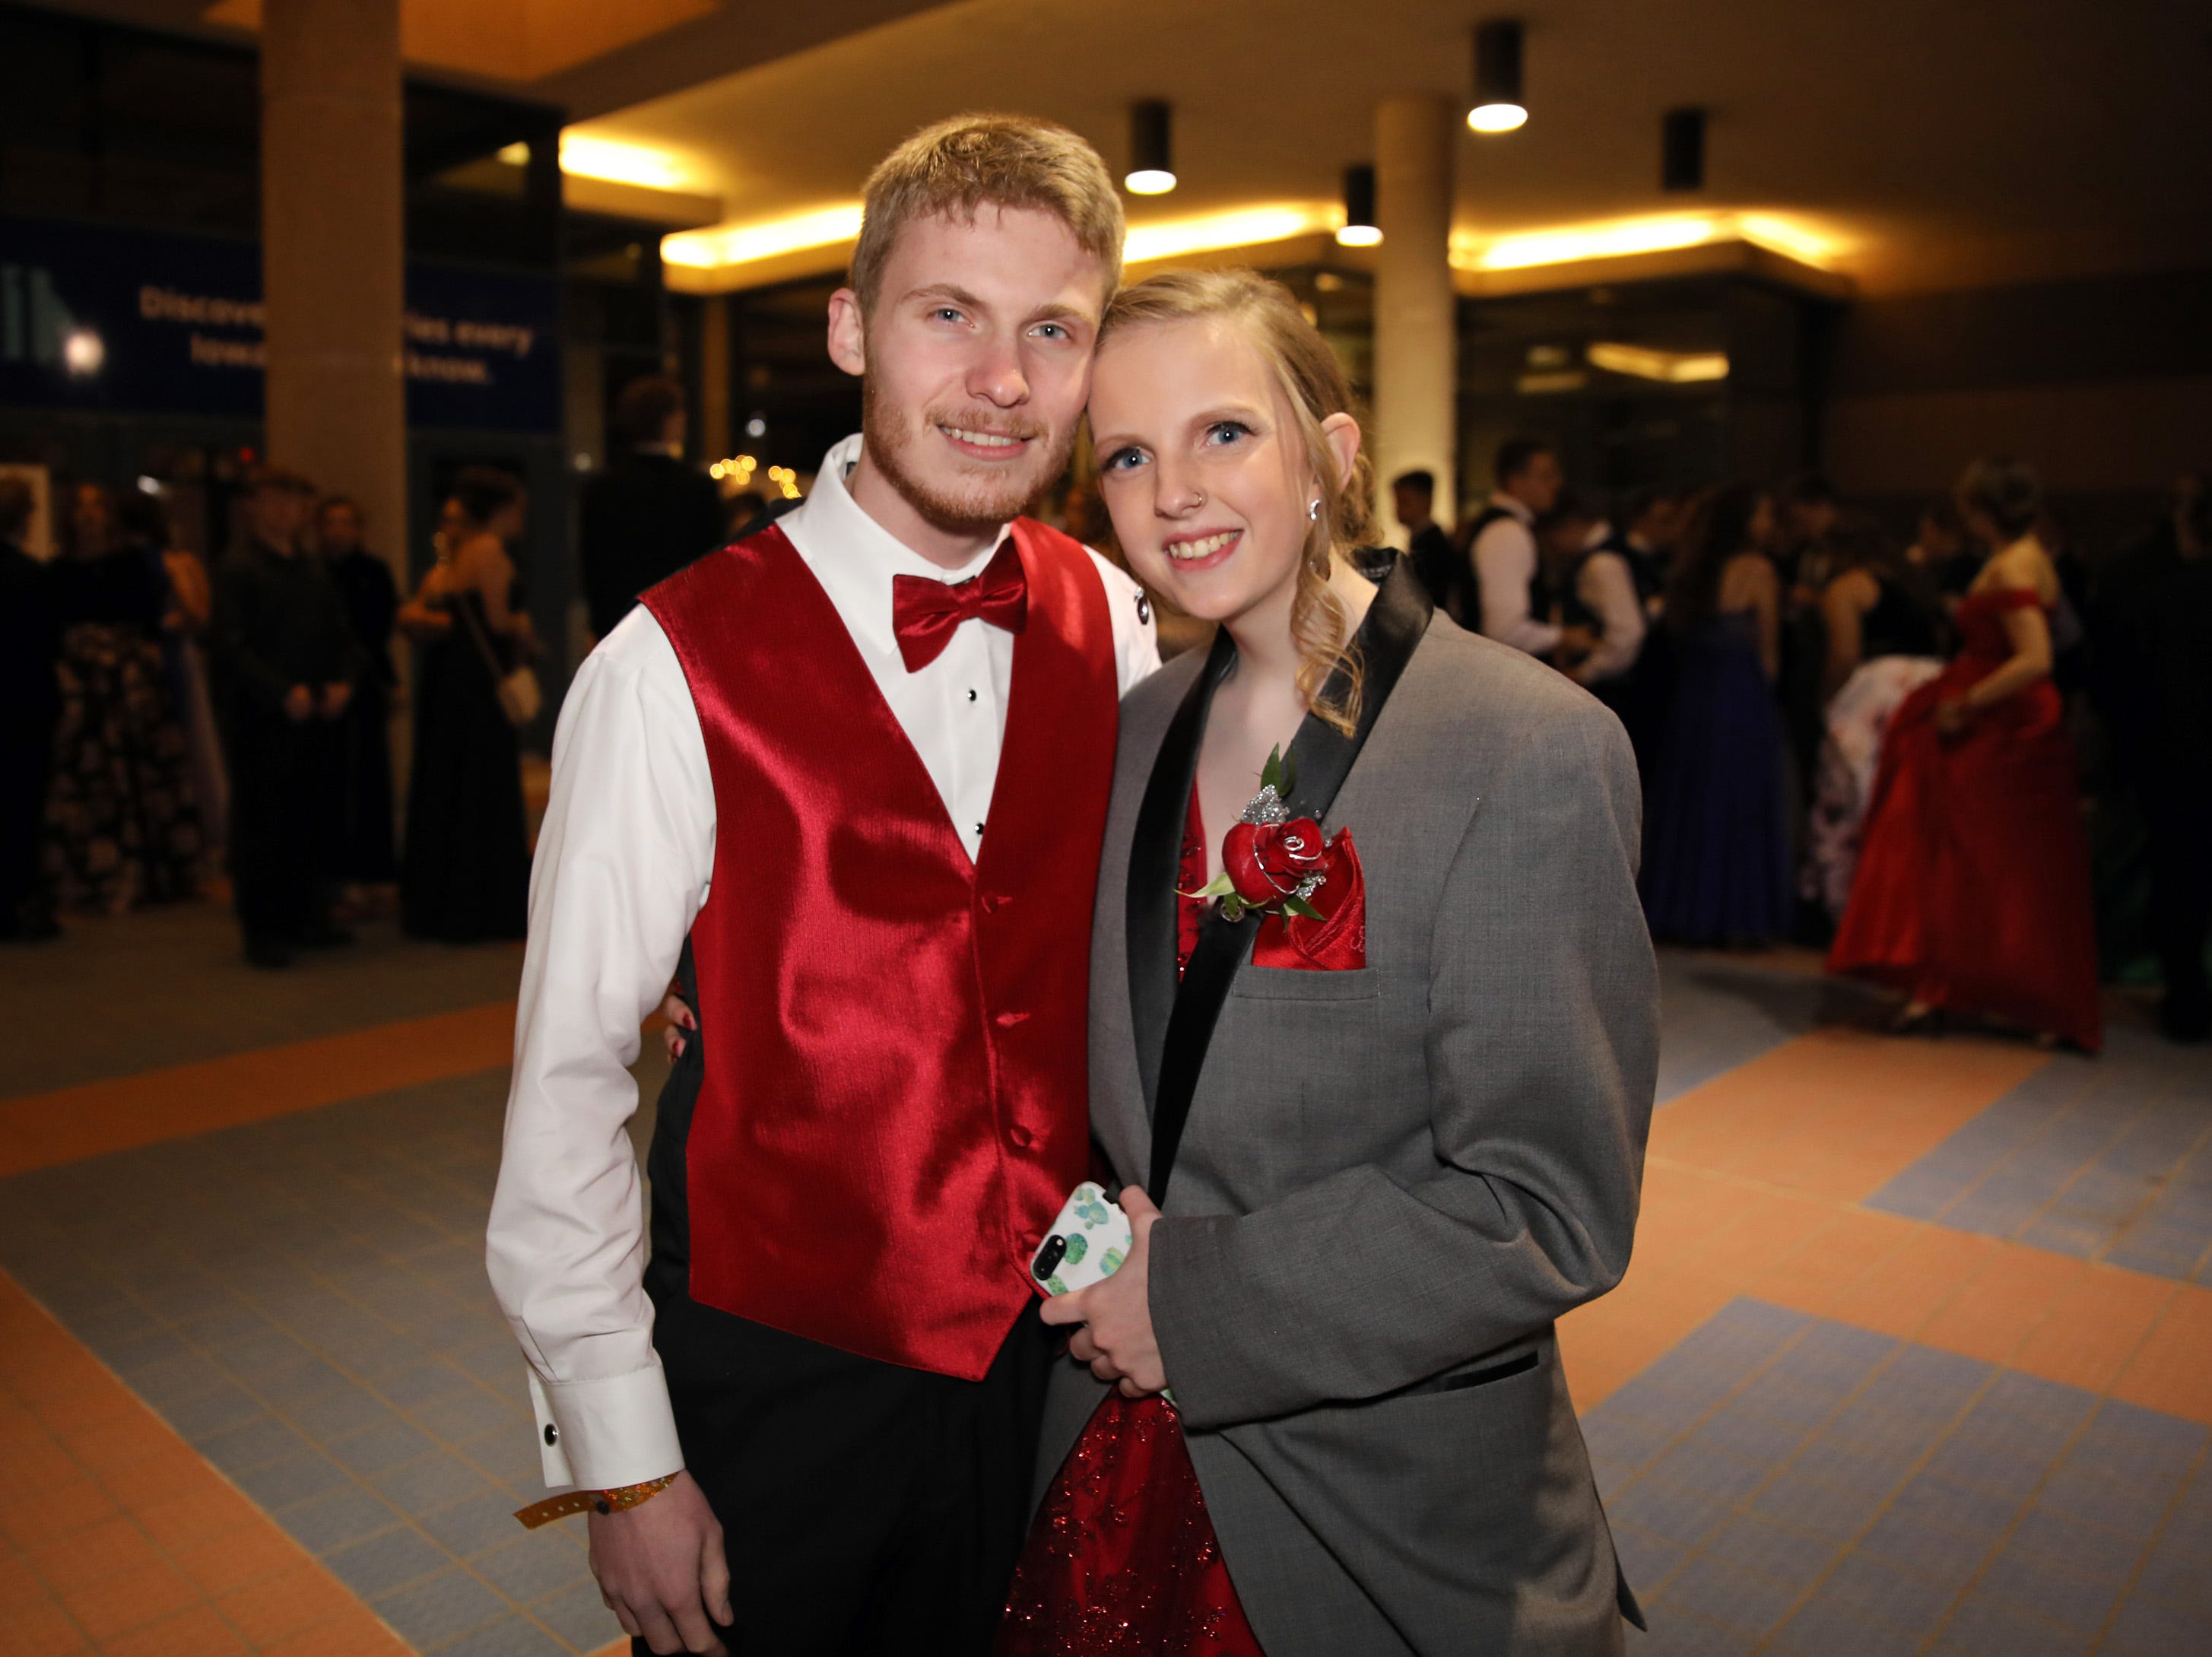 Matt Sepanski lends his jacket to Sydney Broich as they wait to enter the Ankeny Centennial High School prom at the State Historical Building in Des Moines on Saturday, April 13, 2019.